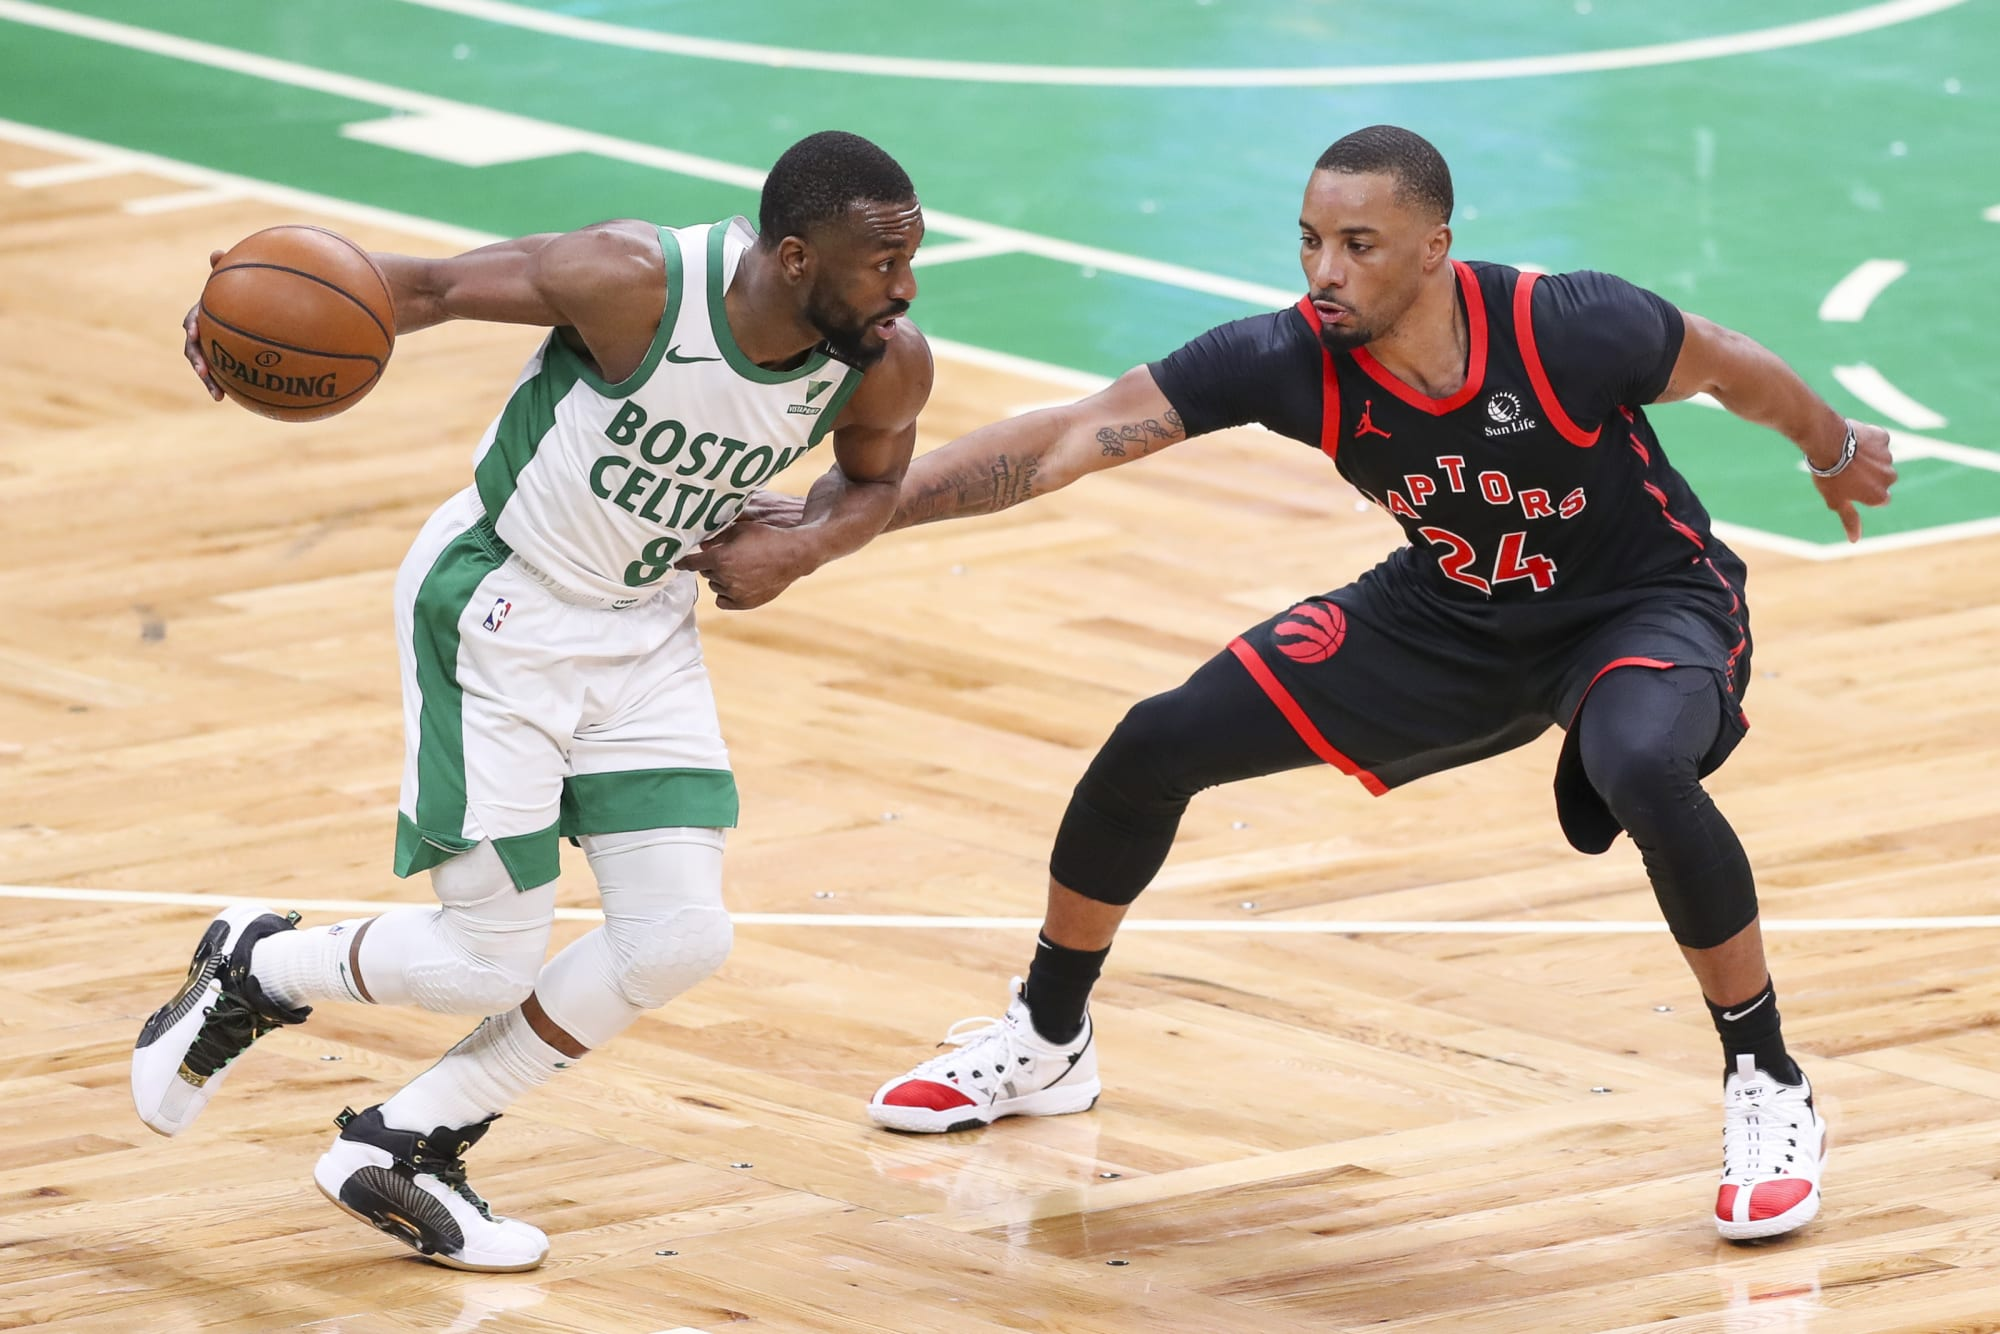 Toronto Raptors: 3 reasons to make a trade at NBA trade deadline